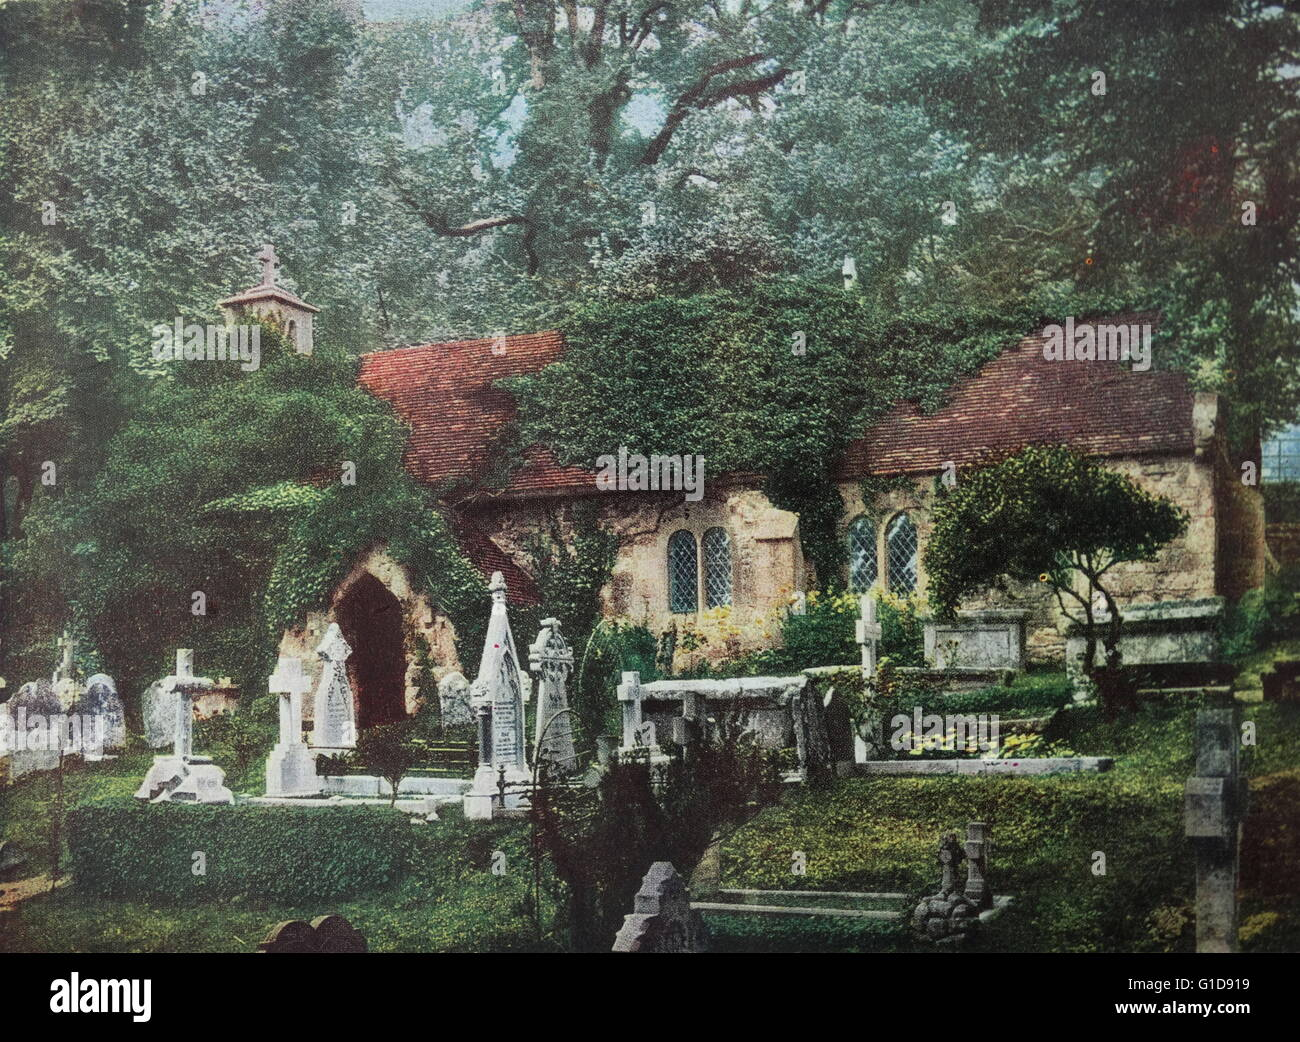 Early 20th Century photochrom image depicting Bonchurch on the Isle of Wight. 1905, England. - Stock Image